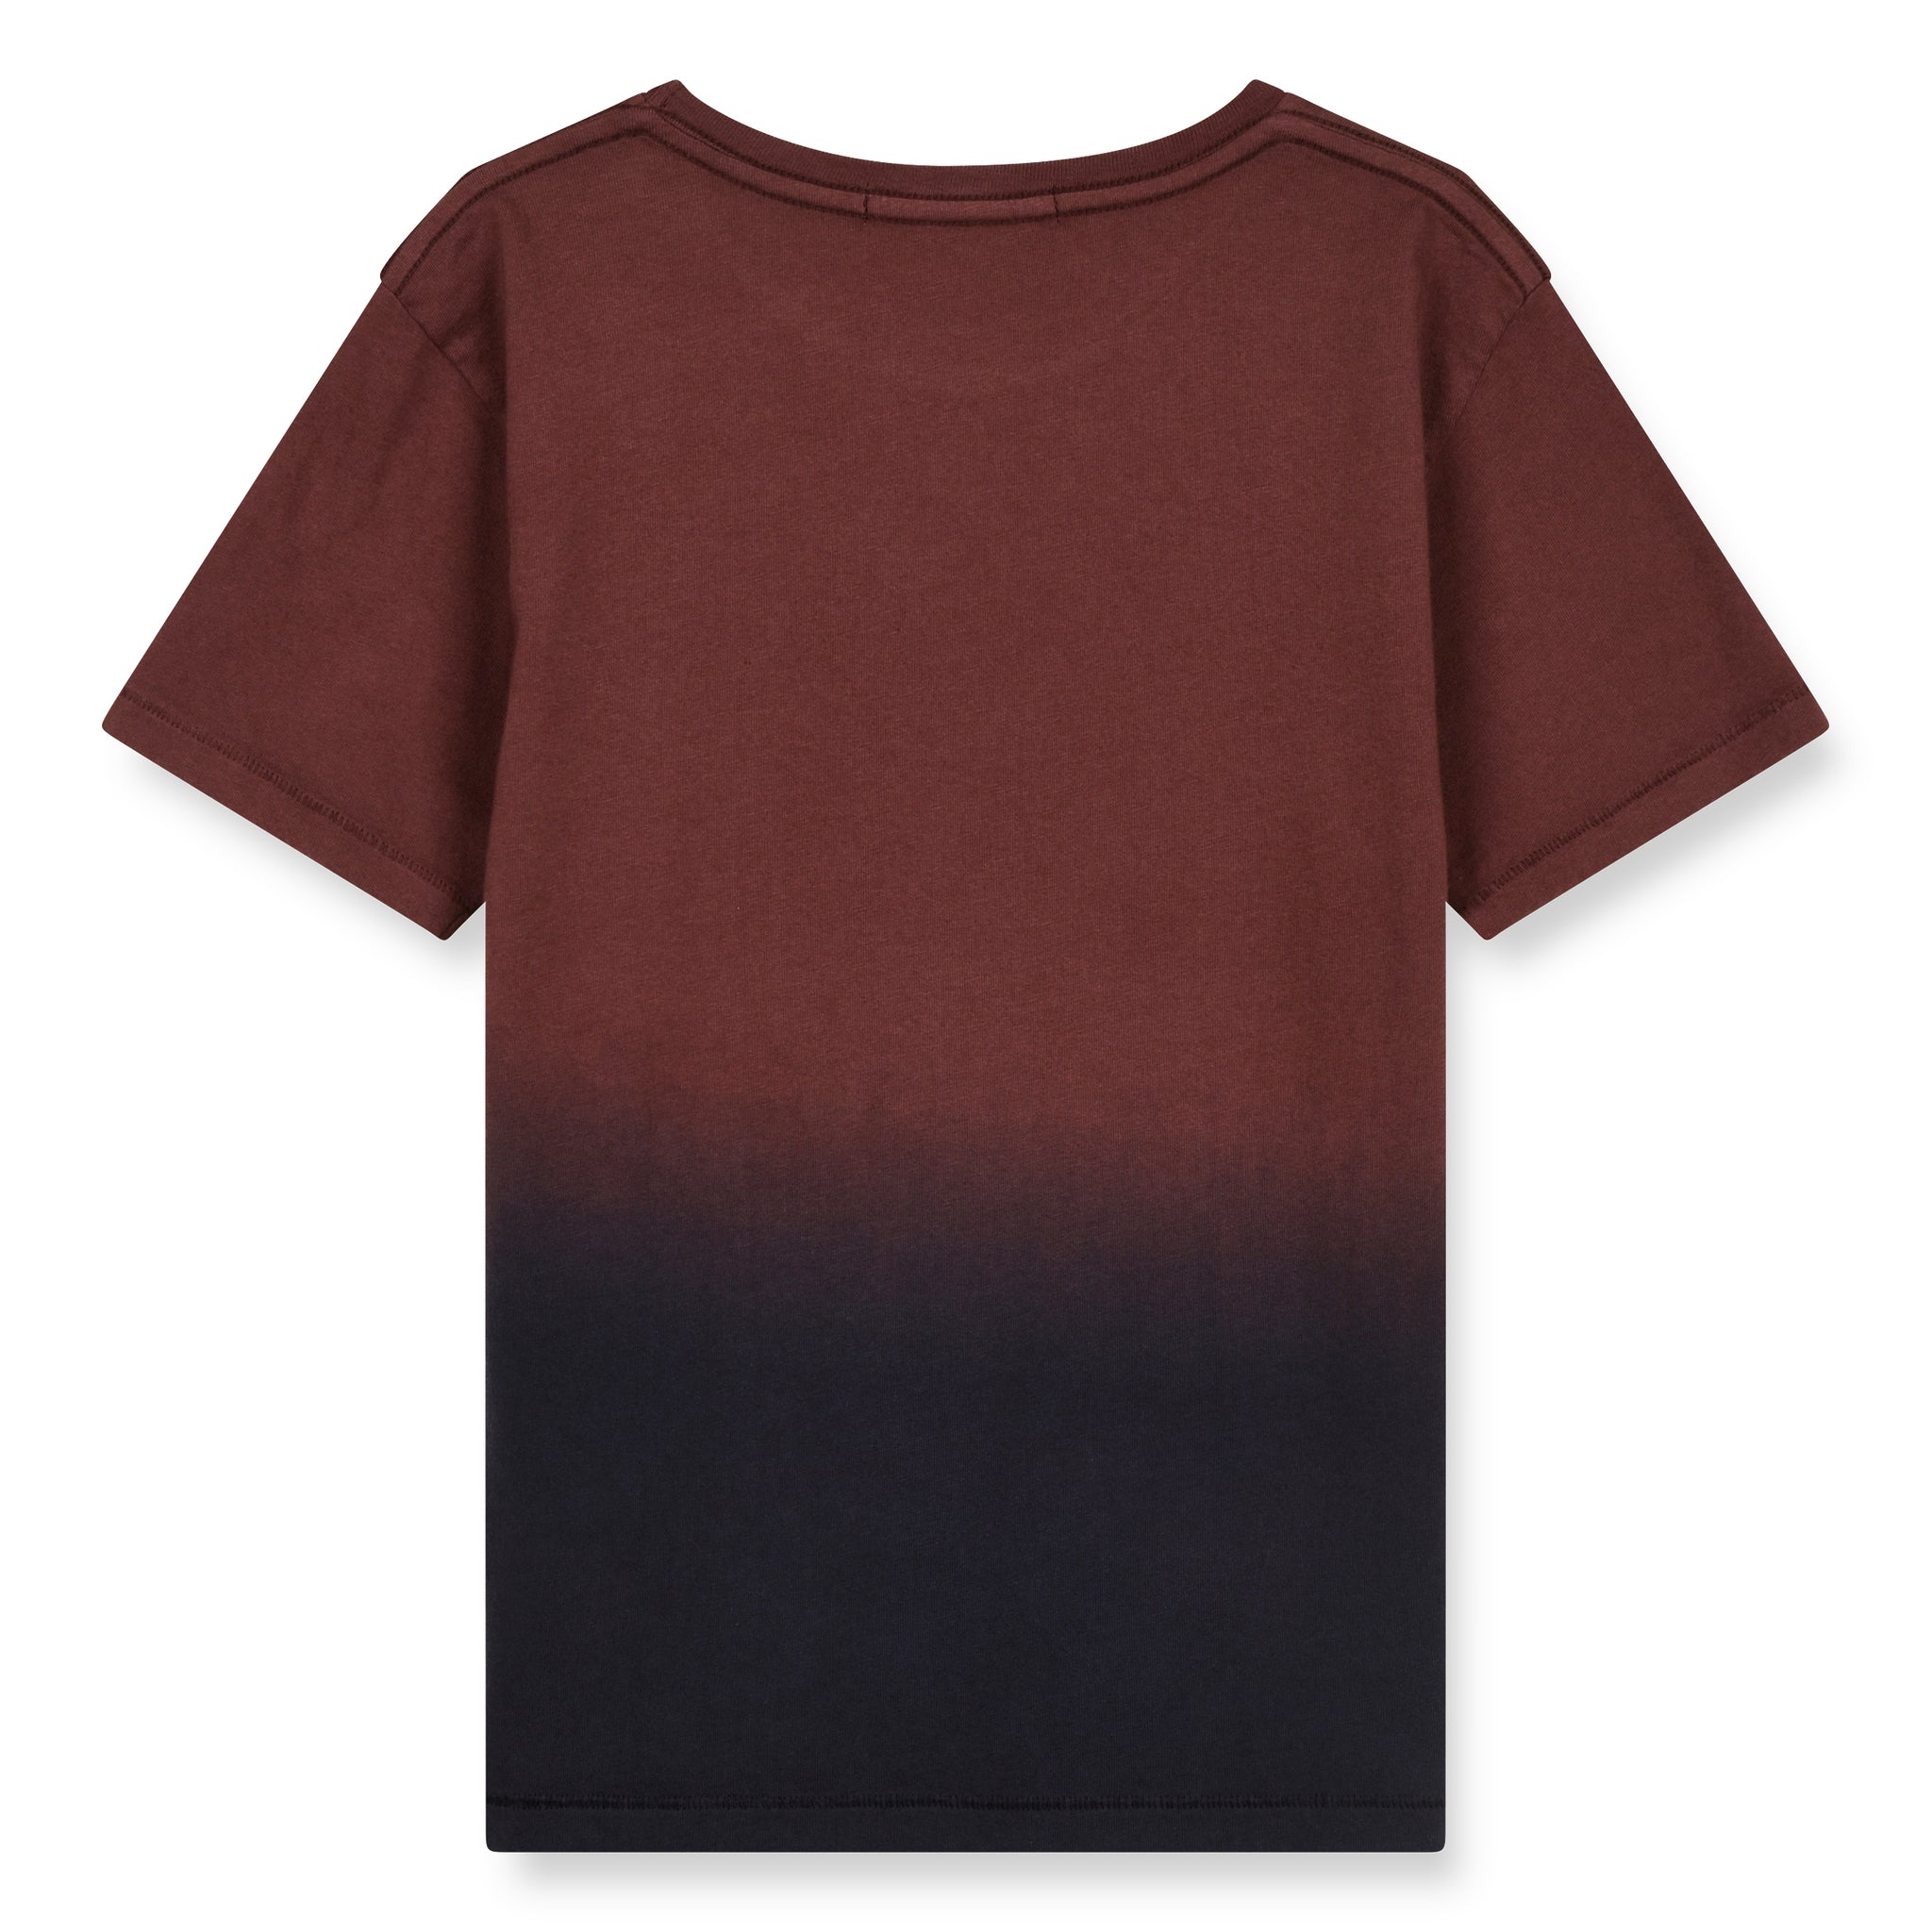 DALTON Burgundy Dip Dye - Short Sleeves T-Shirt 2